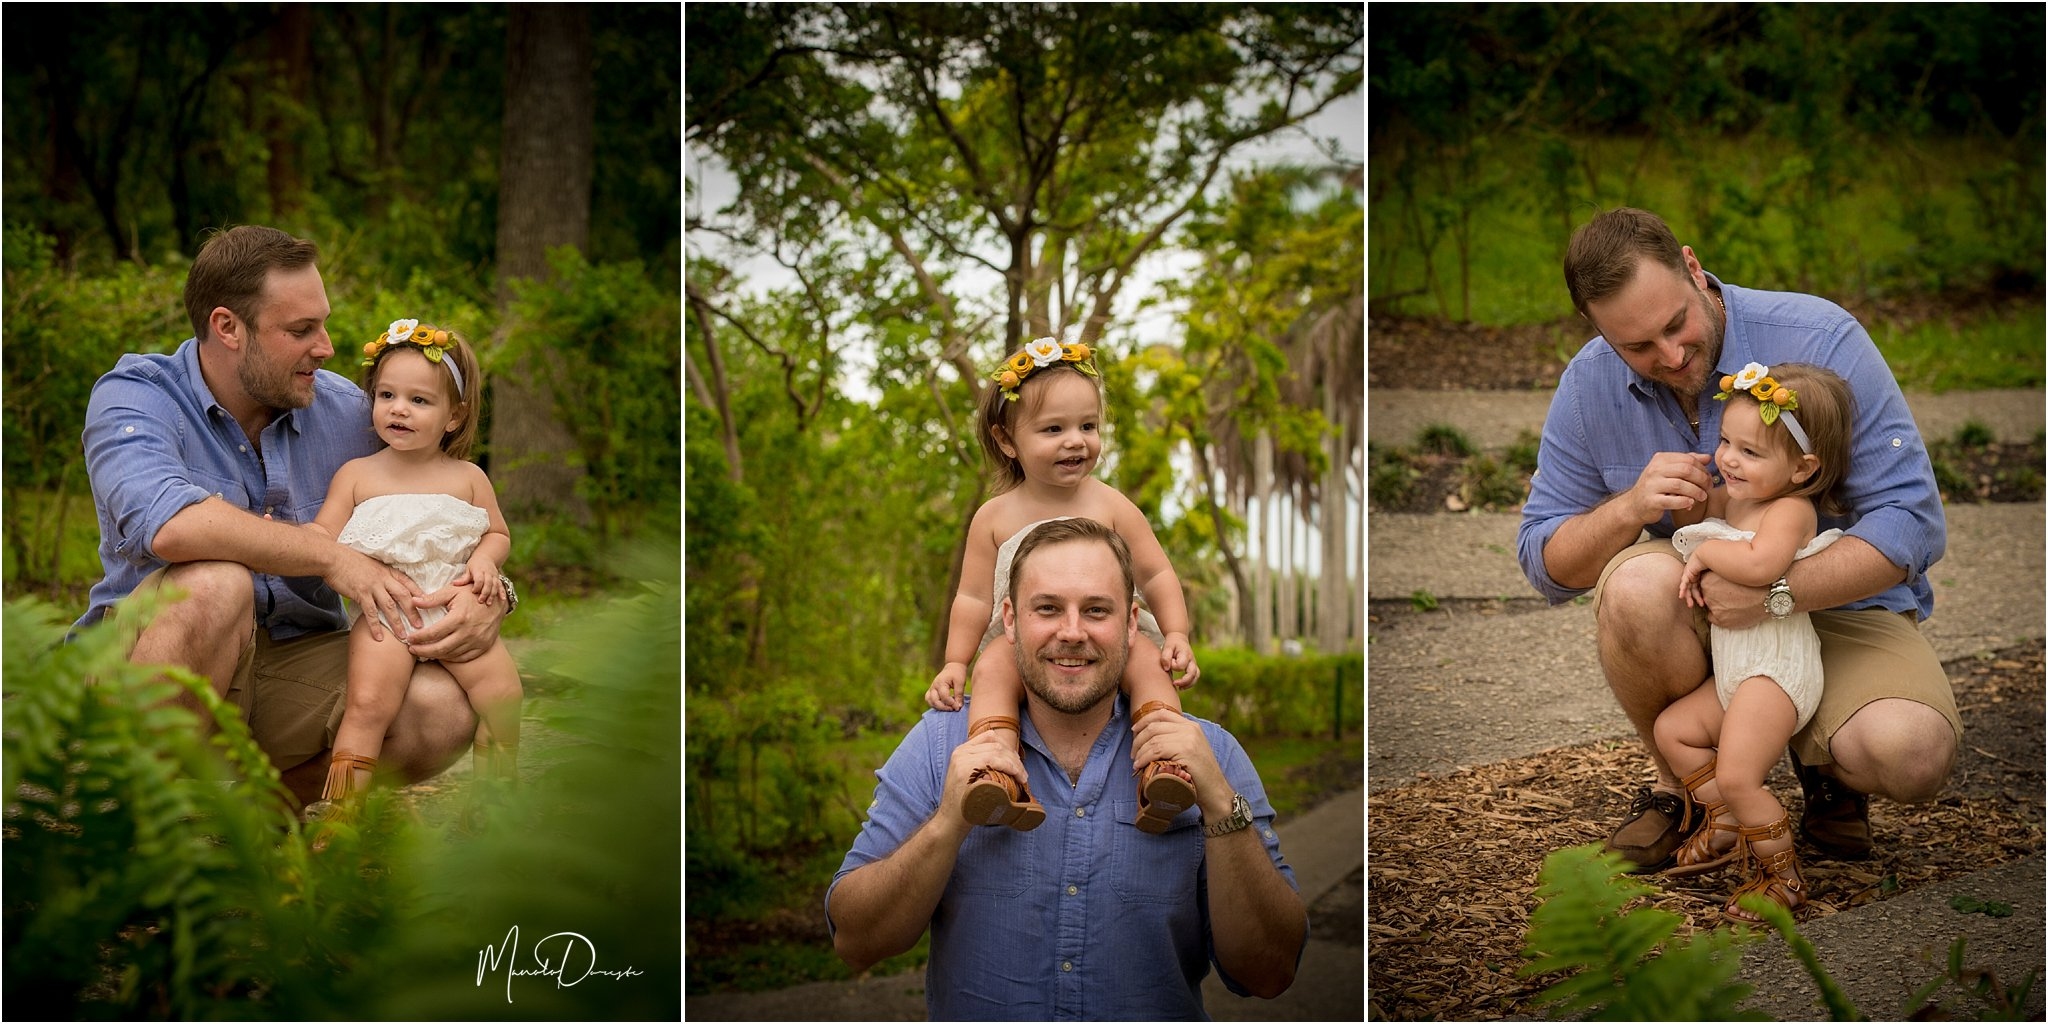 0138_ManoloDoreste_InFocusStudios_Wedding_Family_Photography_Miami_MiamiPhotographer.jpg